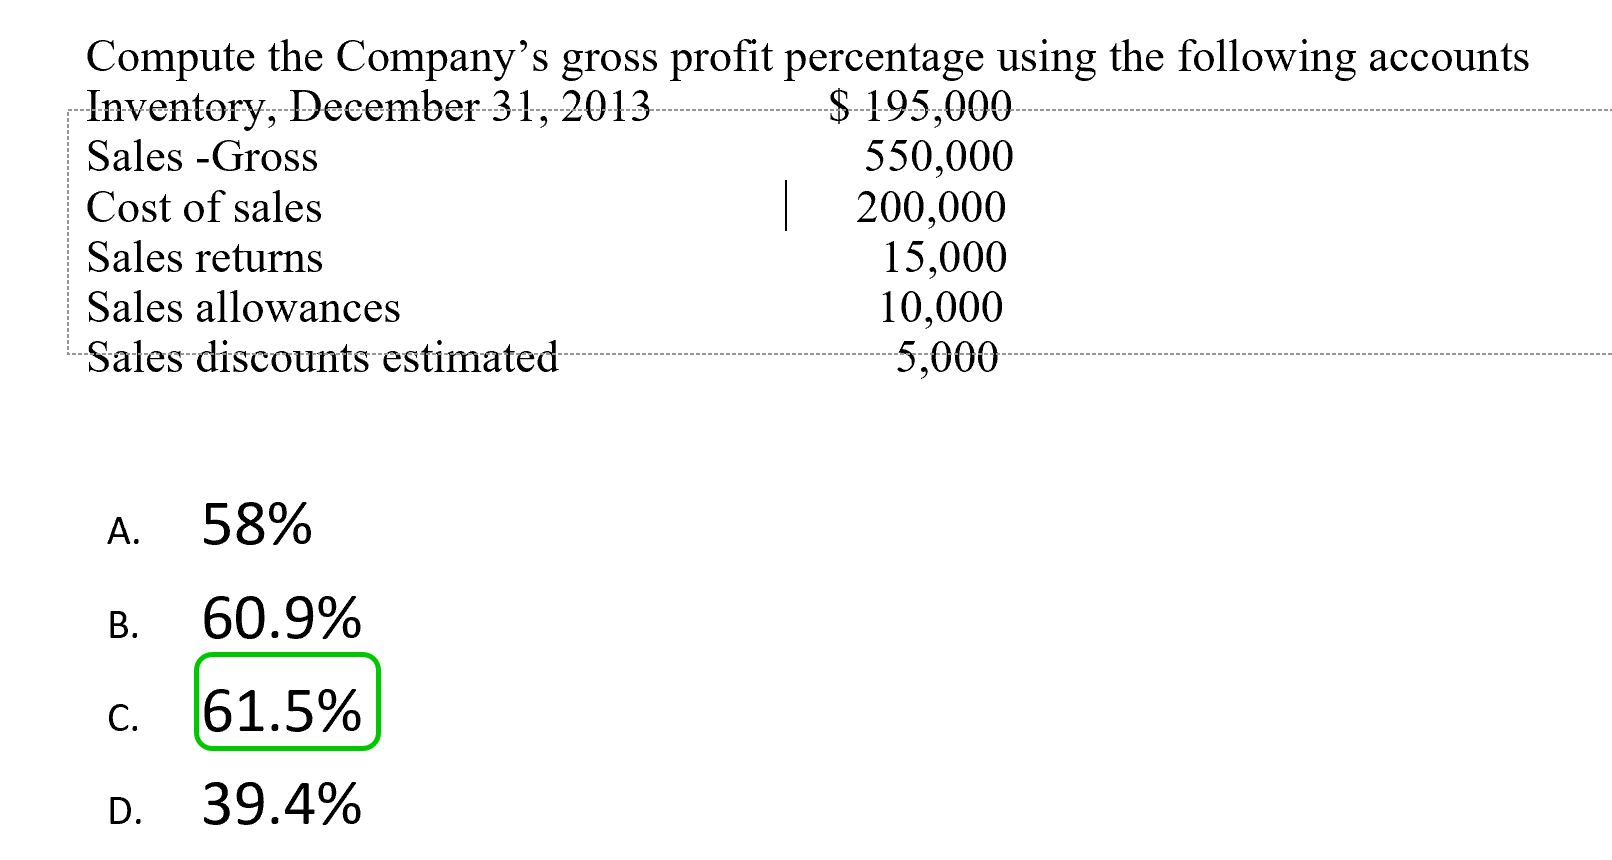 Compute the Company's gross profit percentage using the following accounts -Inventory, December 31, 2013 Sales -Gross $195,000 550,000 200,000 15,000 10,000 5,000 Cost of sales Sales returns Sales allowances Sales discounts estimated 58% А. 60.9% В. 61.5% C. 39.4% D.